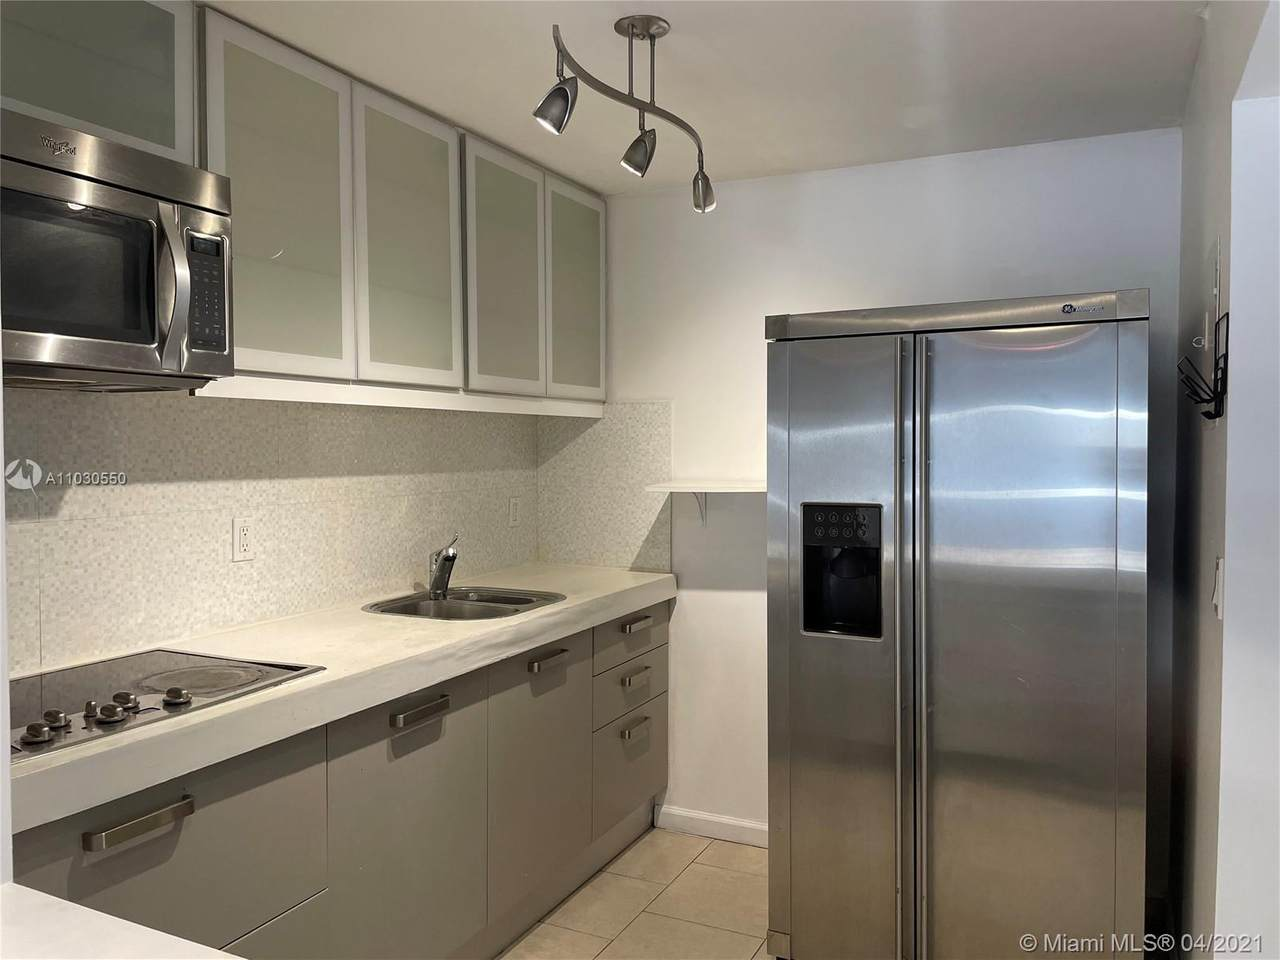 6095 19th Ave - Photo 1